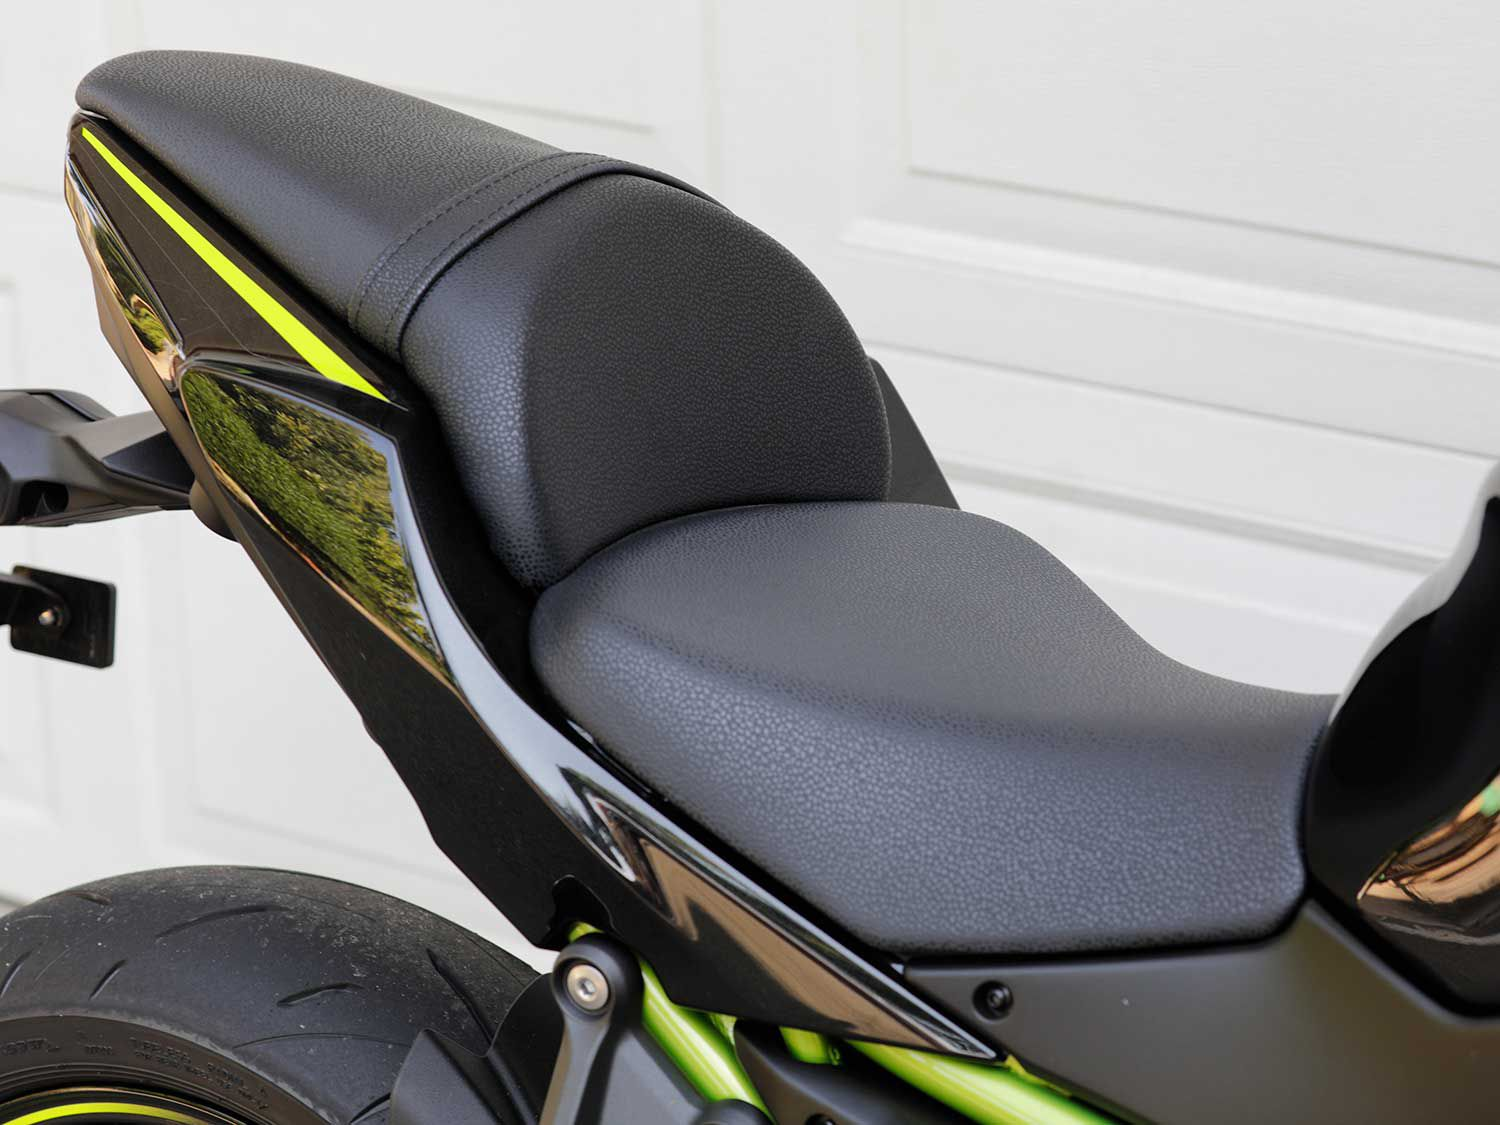 The rider seat is comfortable and well supported. However the seating position is cramped for a six-foot tall rider.